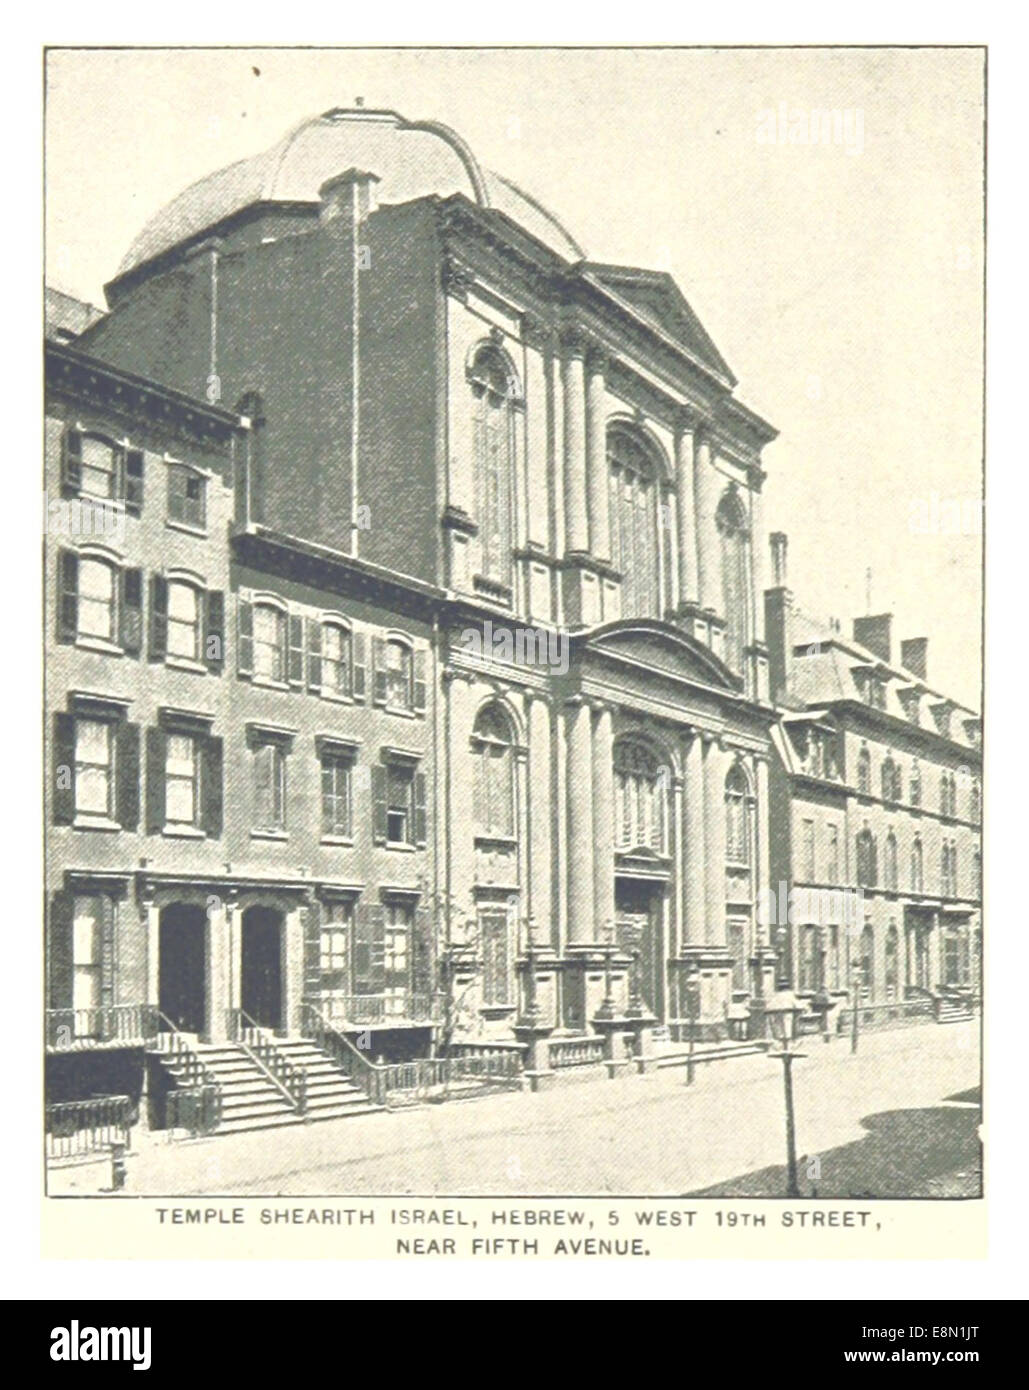 410 TEMPLE SHEARITH ISRAEL (HEBREW) 5 WEST 19TH STREET - Stock Image